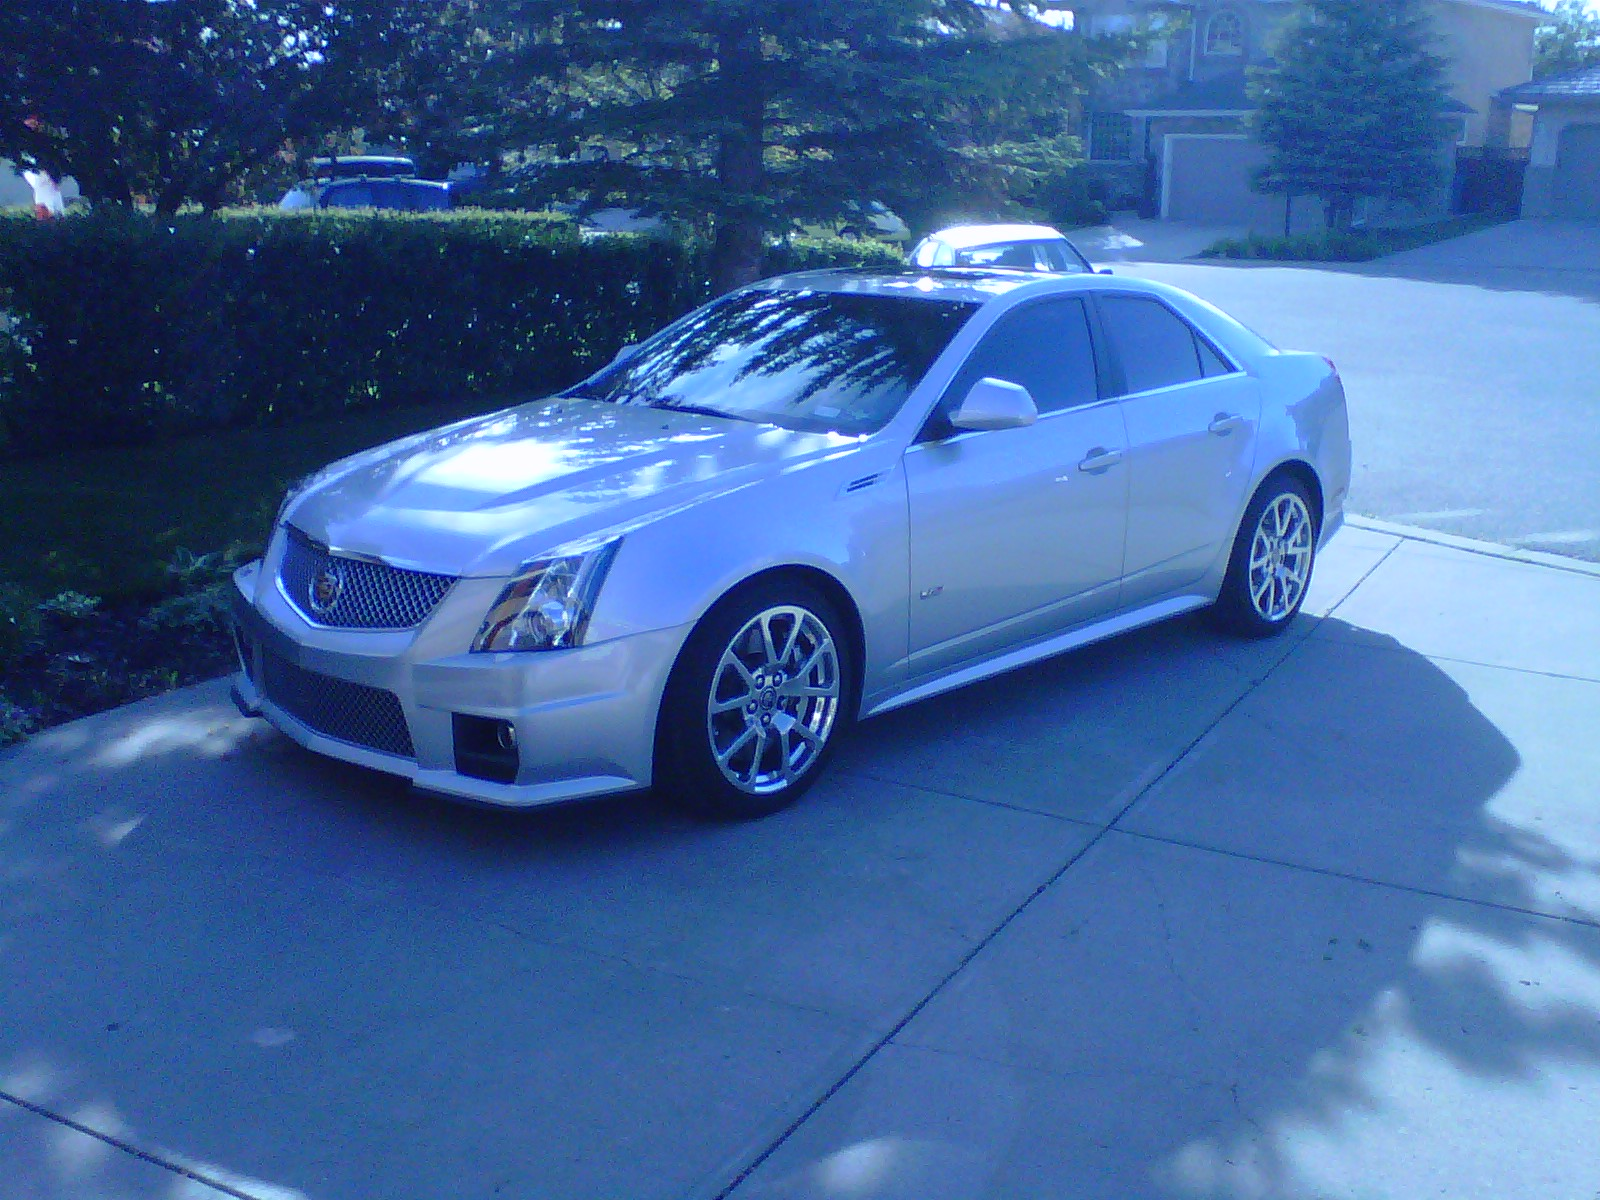 2010 Cadillac Cts-v - Pictures